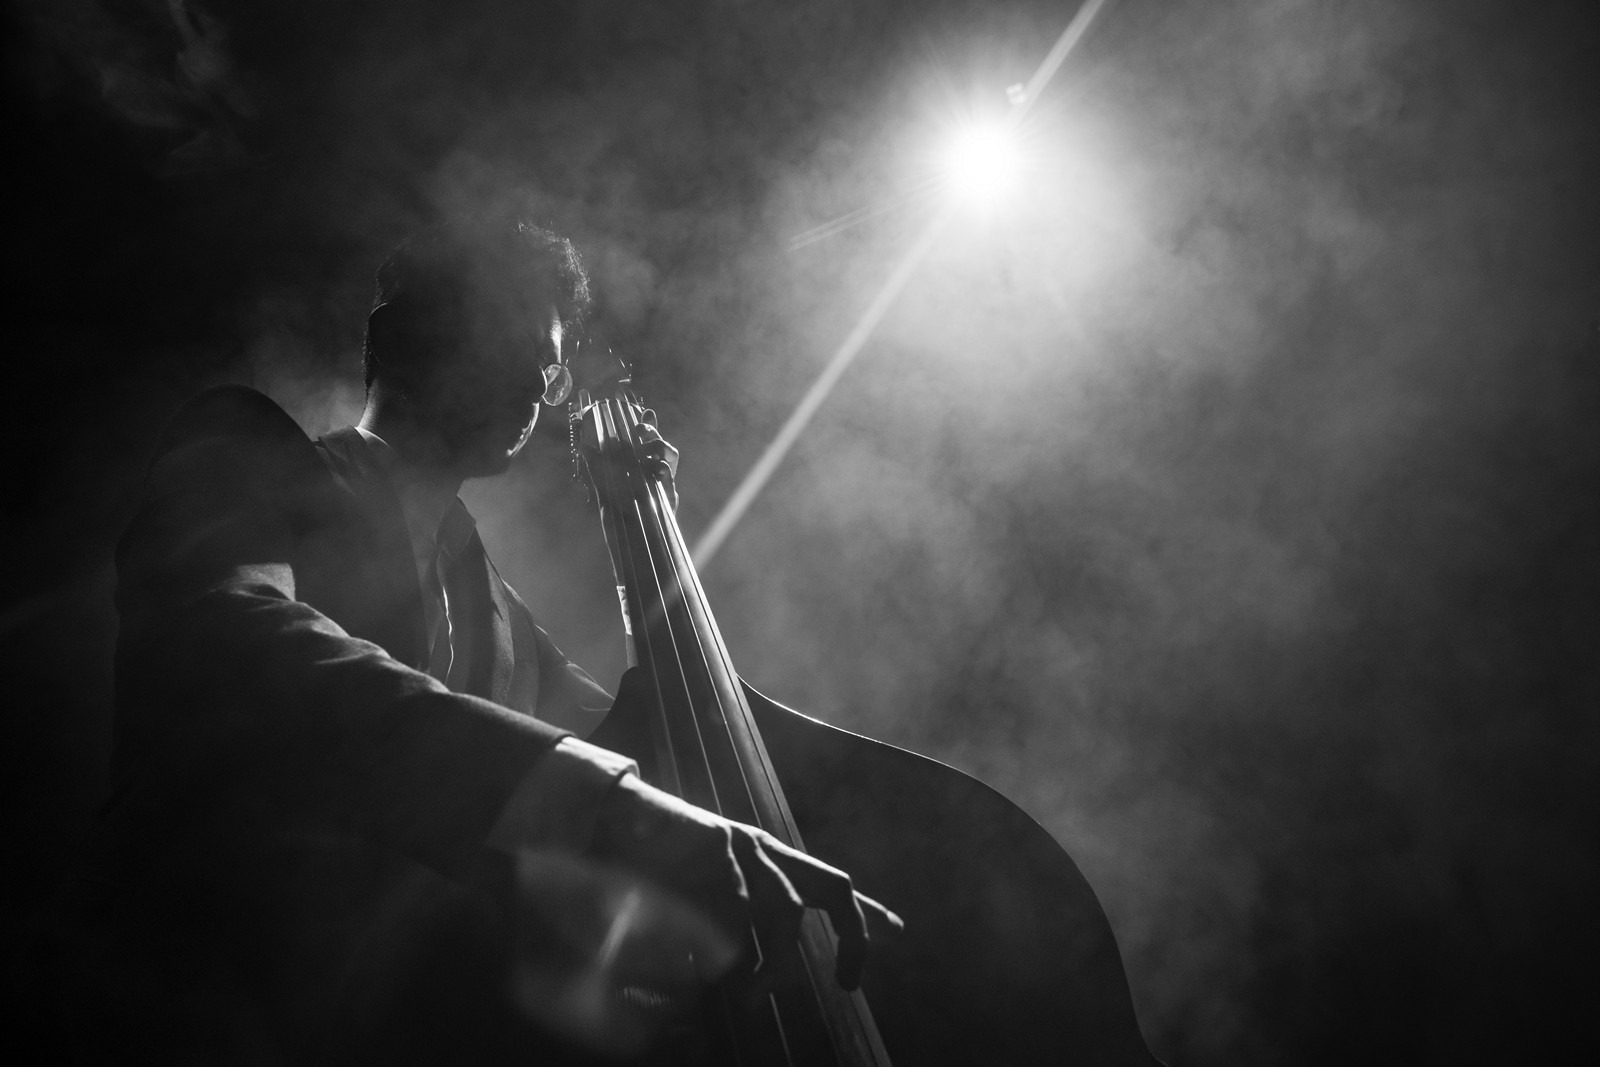 Double bass player by portrait photographer Paul Ward